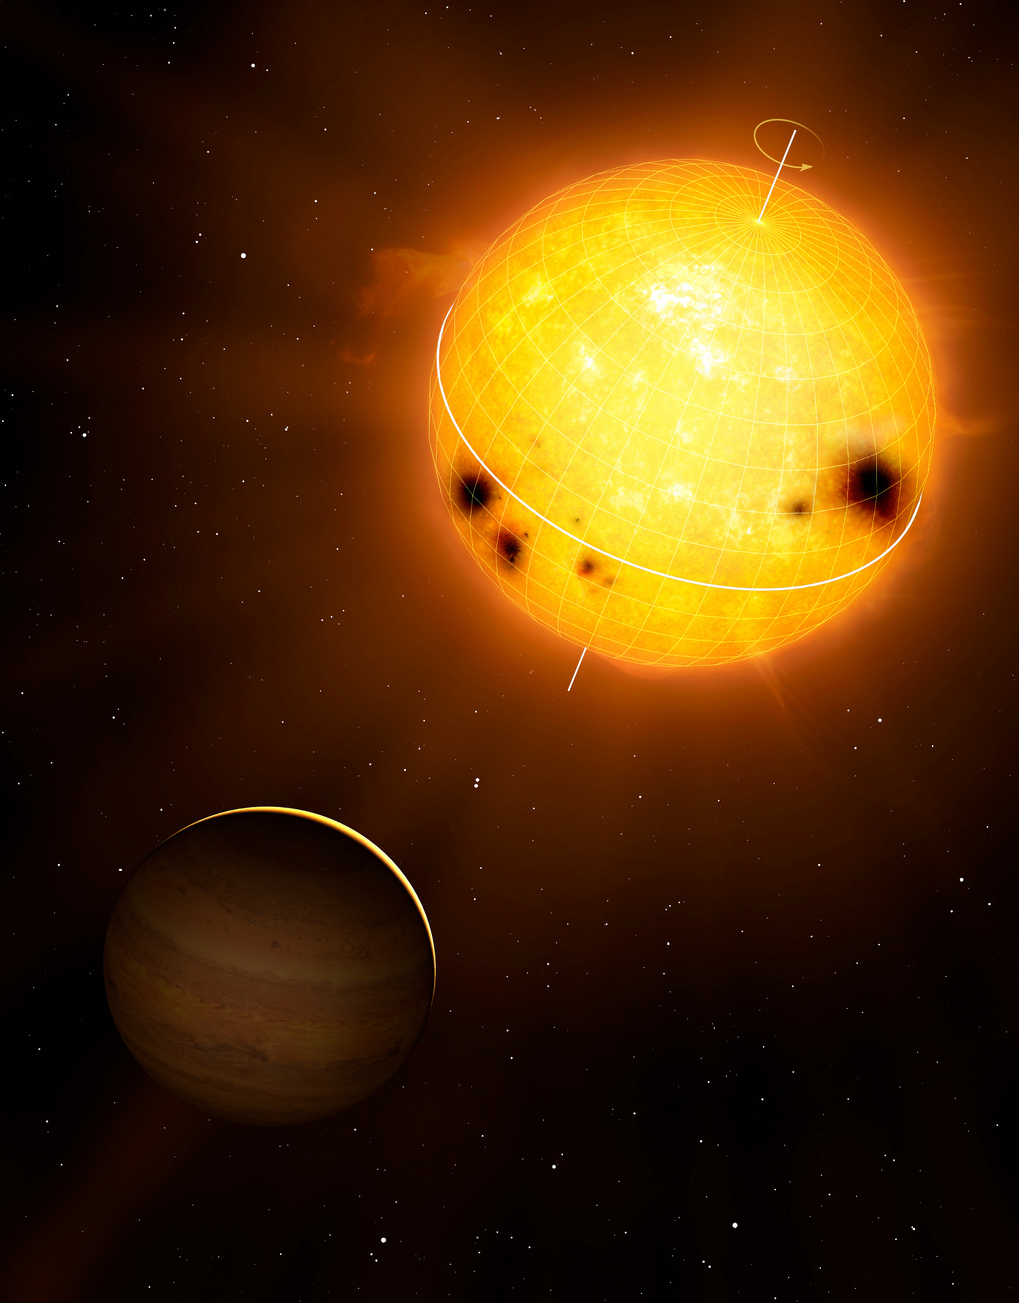 Europe backs missions to search for Earth-like planets, deep space cataclysms